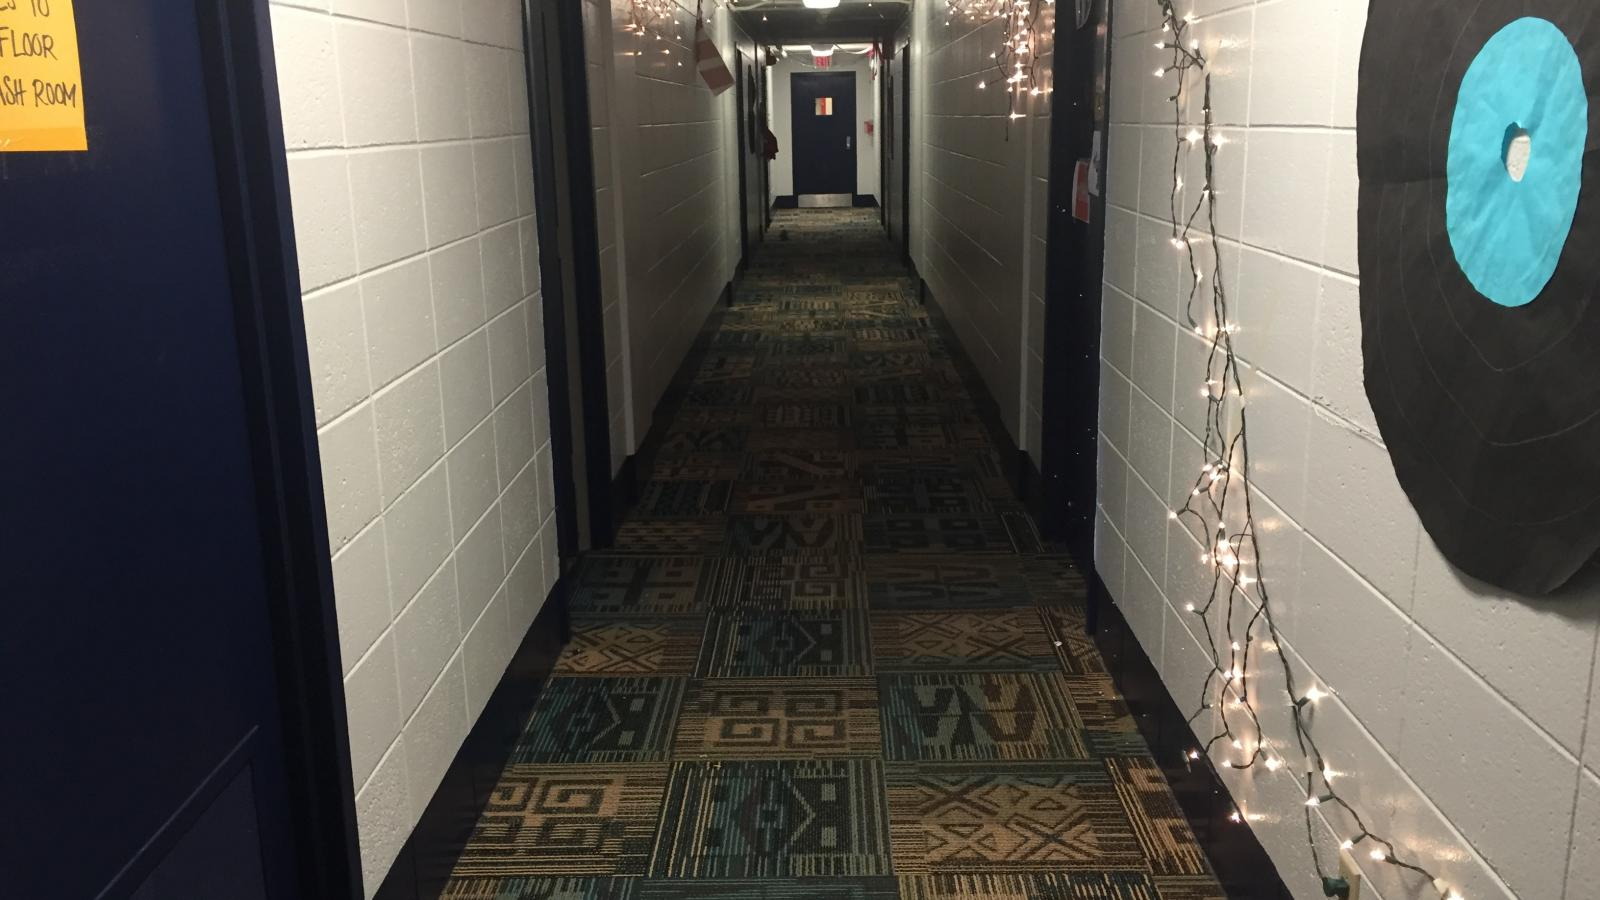 Ohio State University Campus Religion: Christmas Lights in Taylor Tower